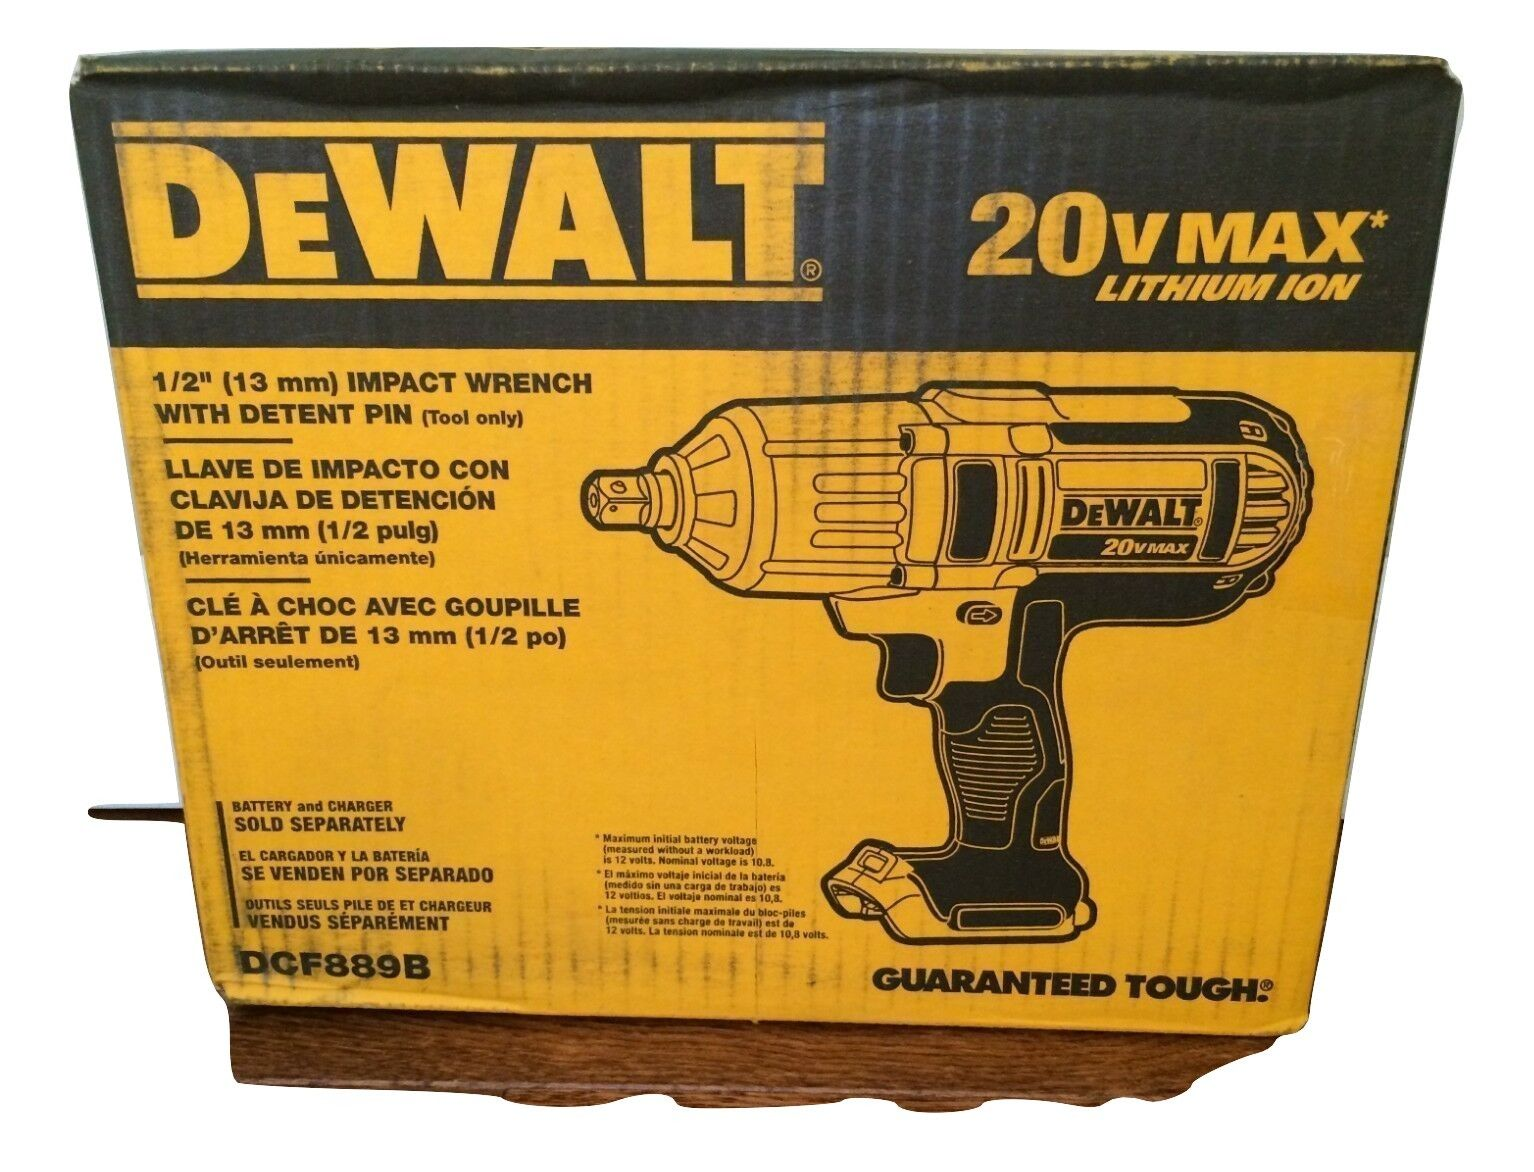 Pin By The Posher On Basic Household Needs With Images Impact Wrench Dewalt Wrench